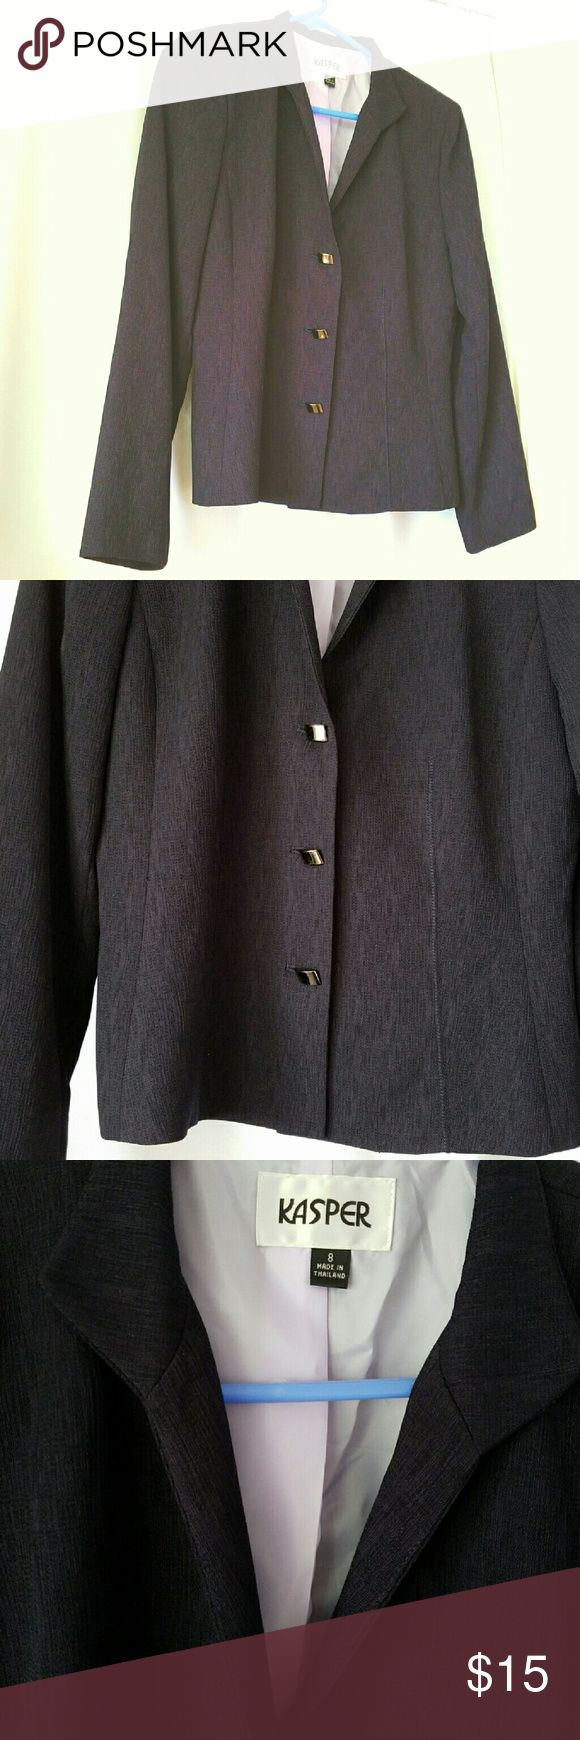 GORGEOUS NAVY BLUE BLAZER Gorgeous dark navy blue/or a dark purple blazer By Kasper size 8. It has a slight oriental look to it, with the dark silver buttons. 100% polyester and is lined also. No flaws in perfect condition. Sleeves can be rolled up to revel the light lavender colored lining. Check out the second photo to see the cool textured fabric and buttons. Make an offer! Kasper Jackets & Coats Blazers